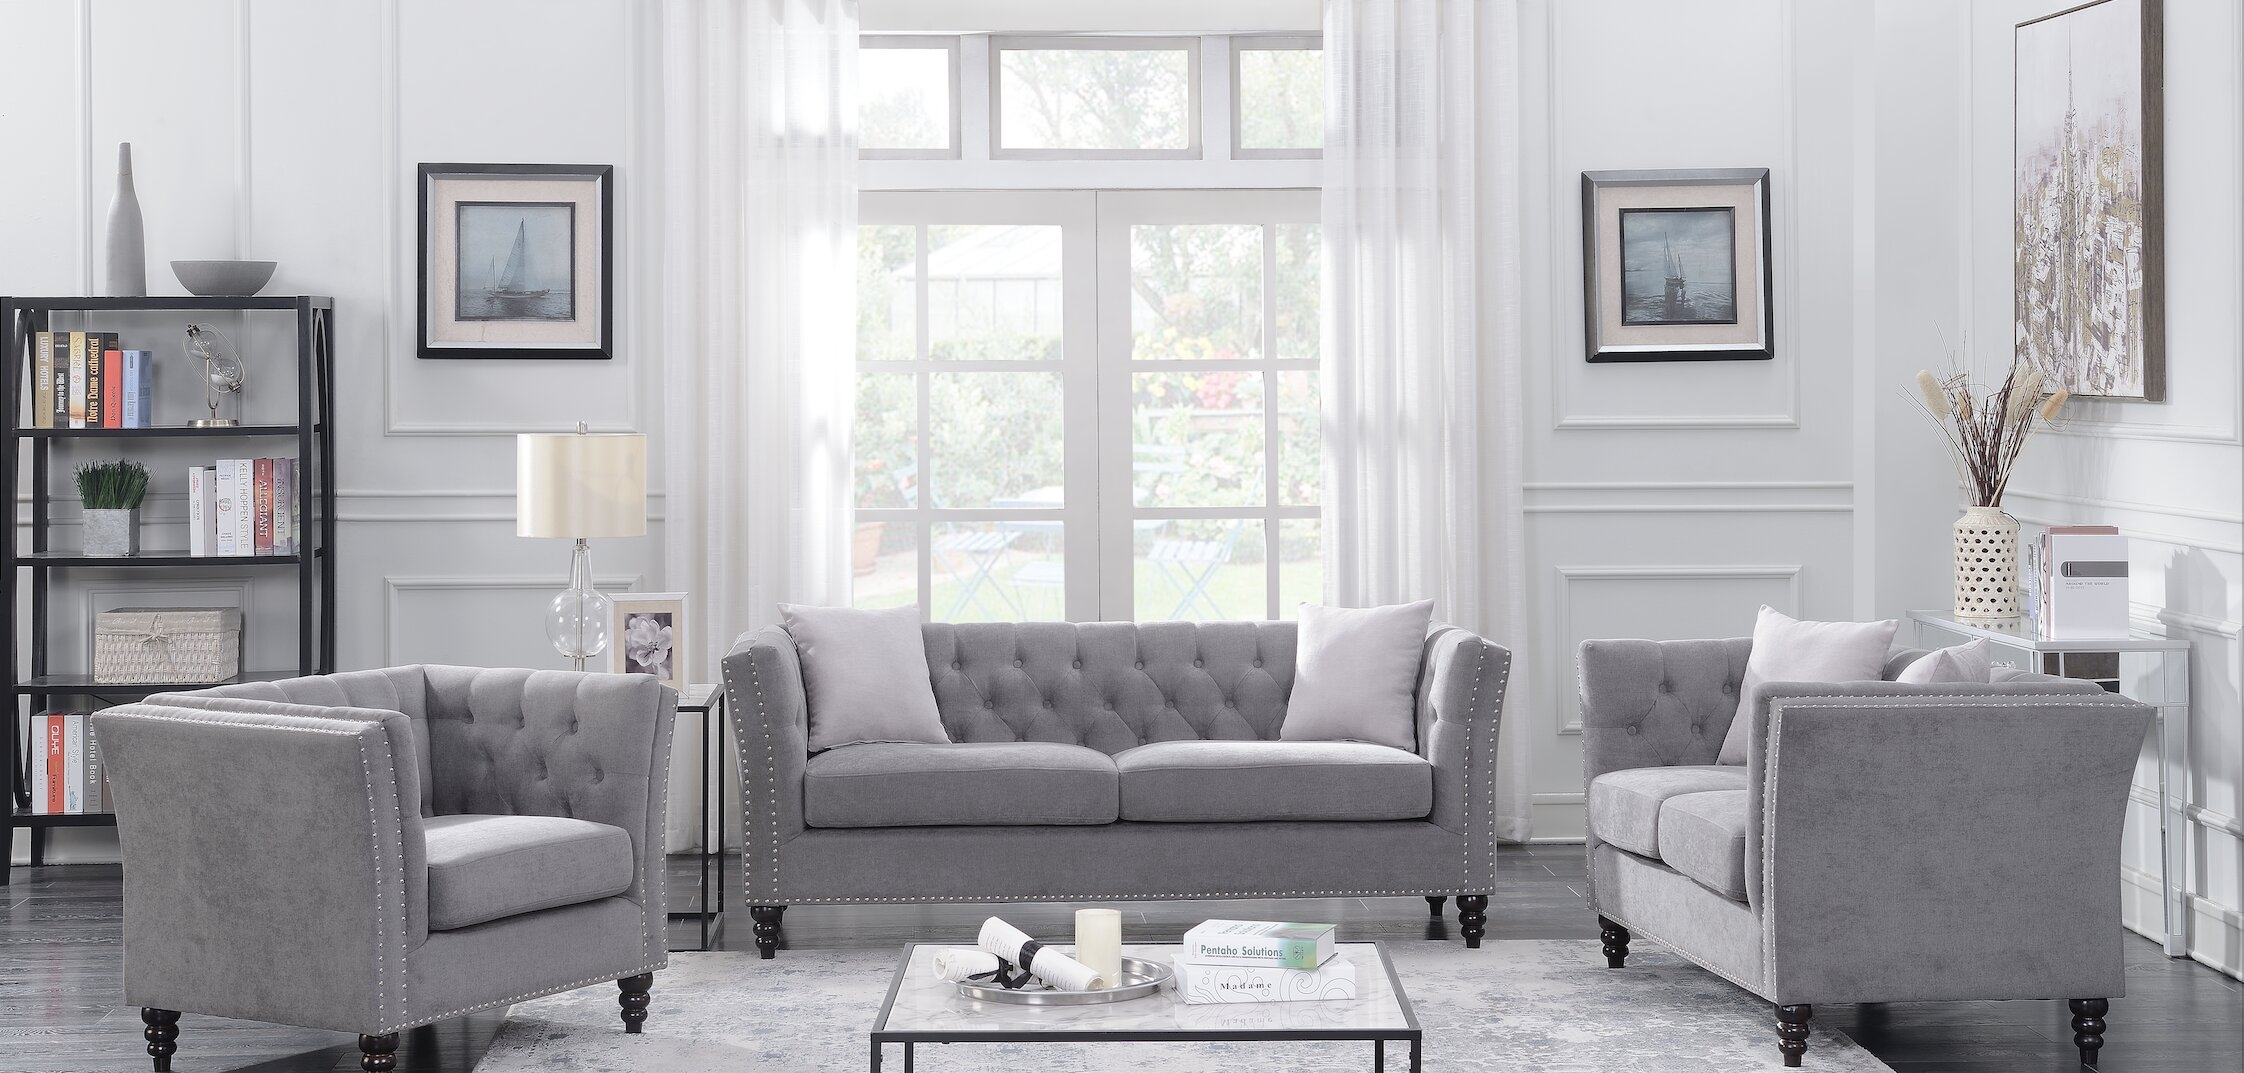 3 Piece Living Room Set You Ll Love In 2021 Visualhunt